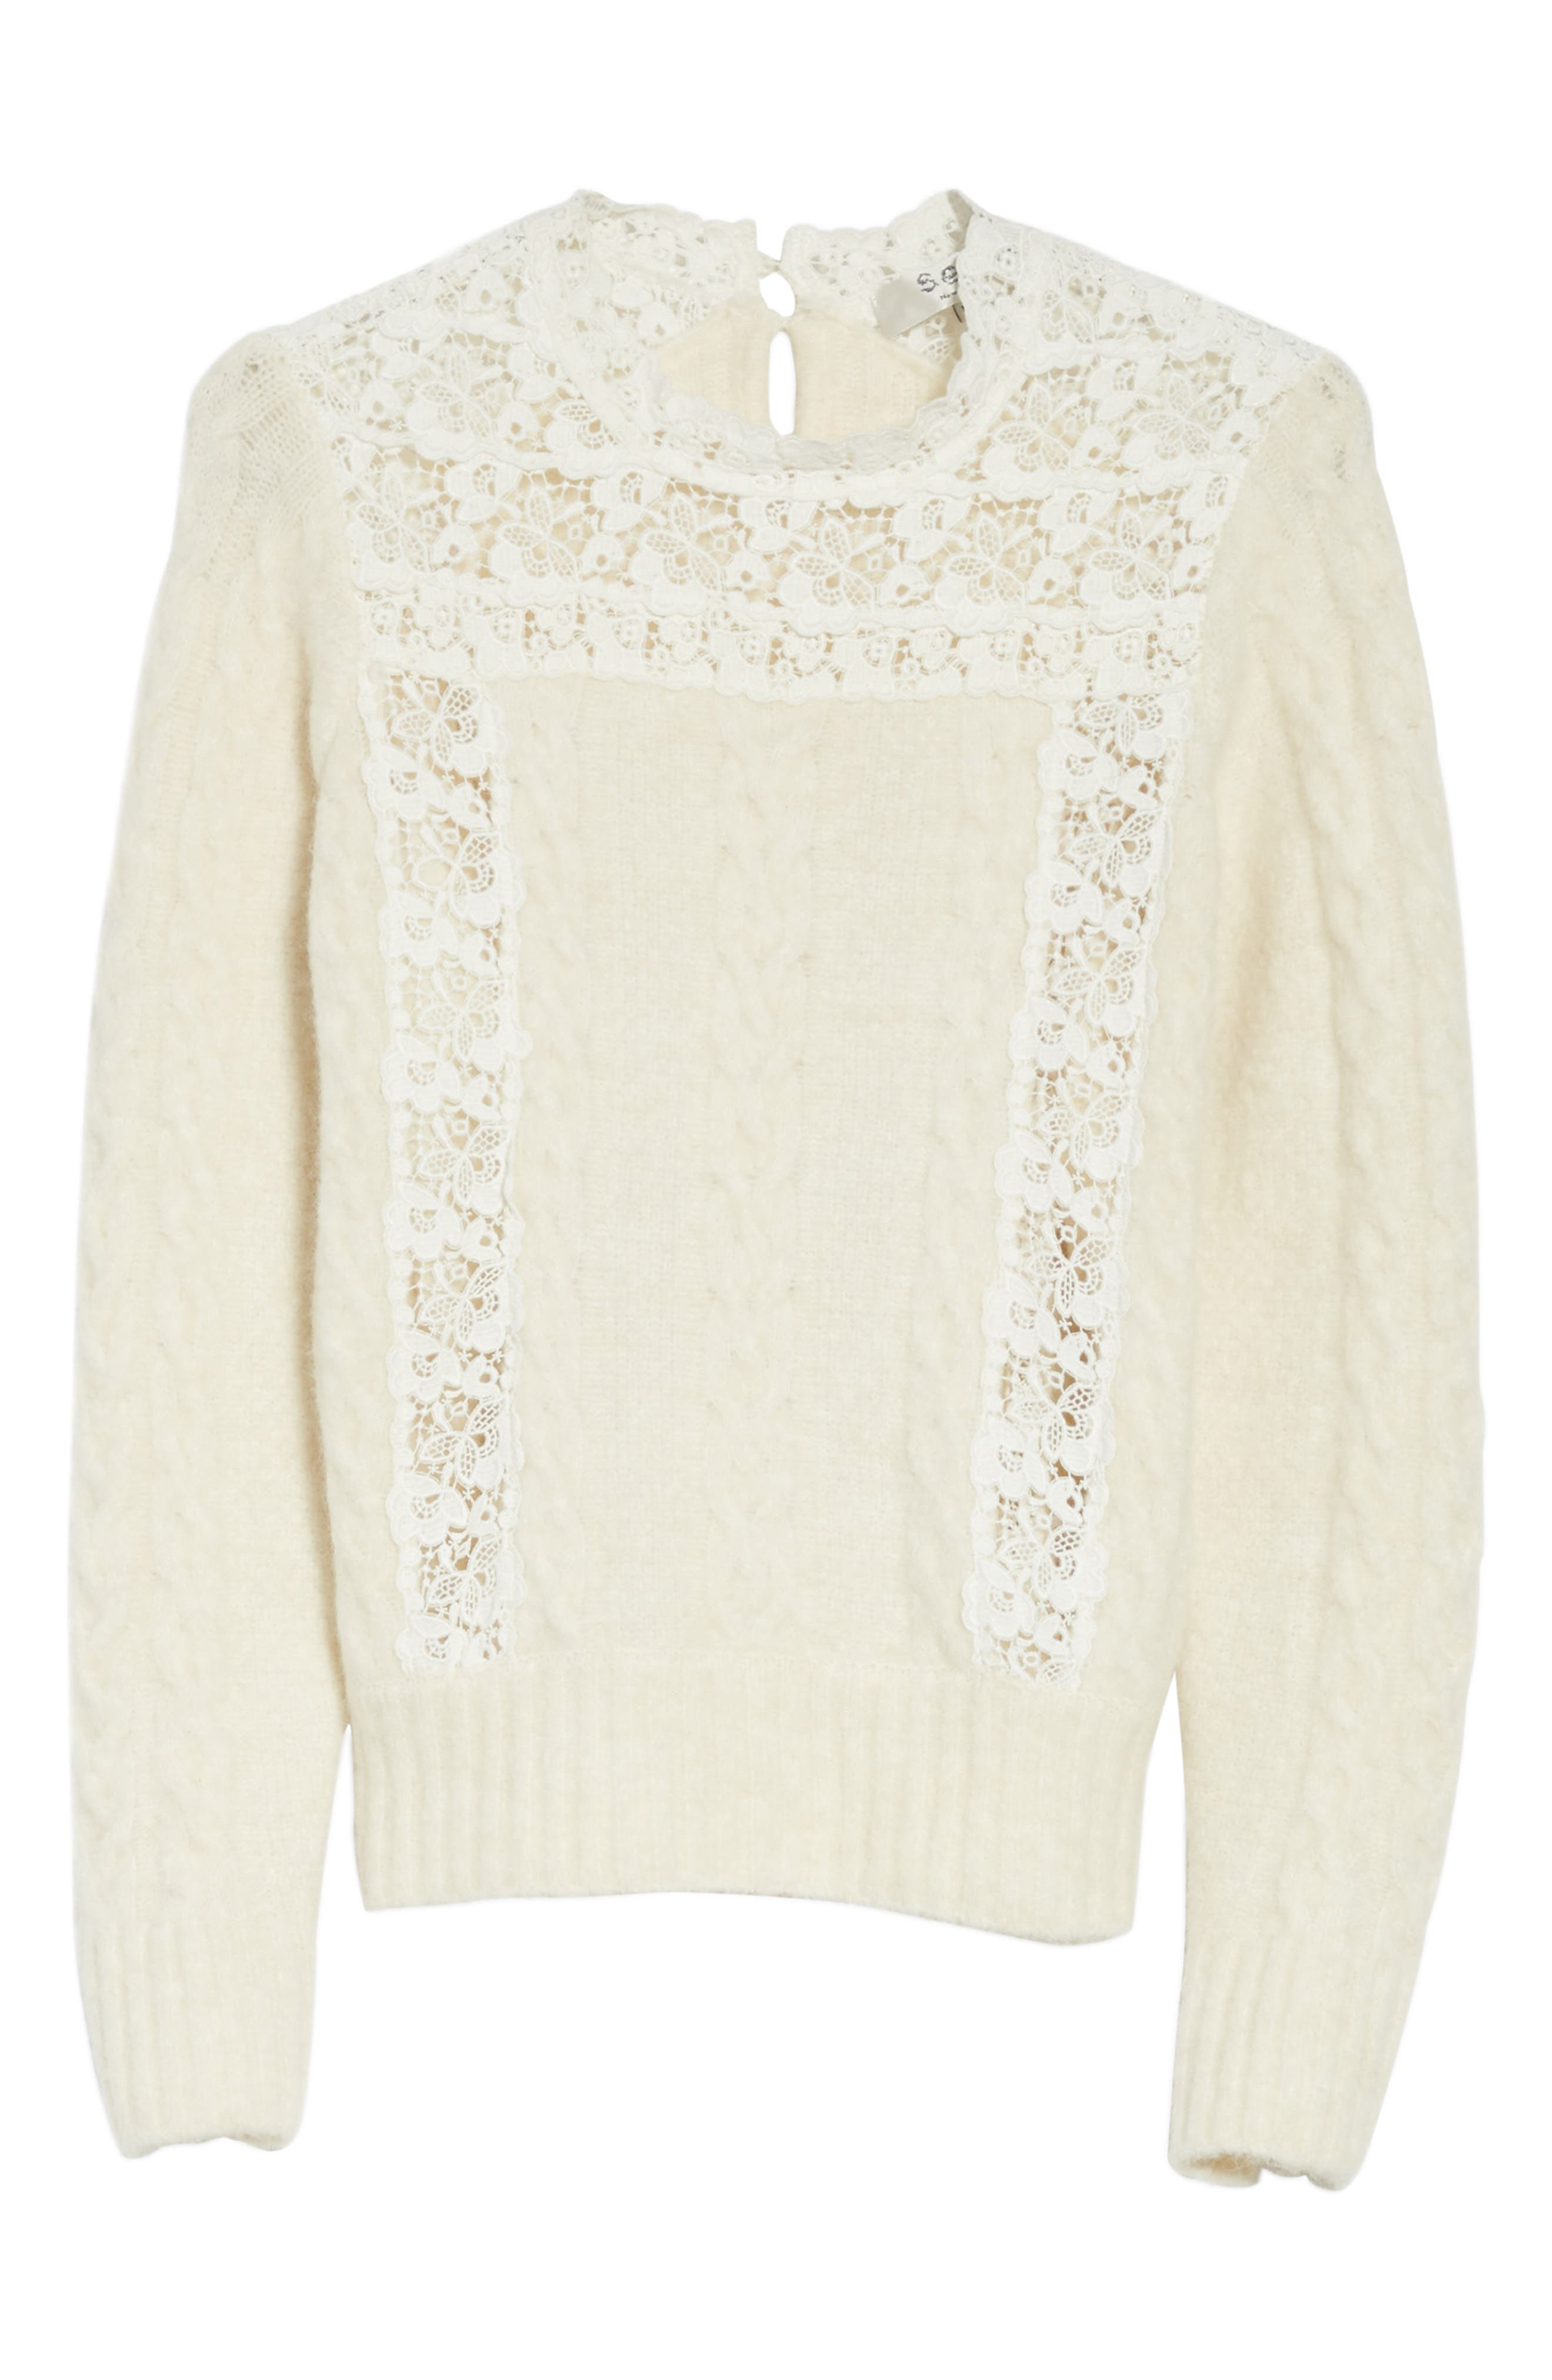 Lace Lace Inset Sweater,                             Alternate thumbnail 6, color,                             Cream